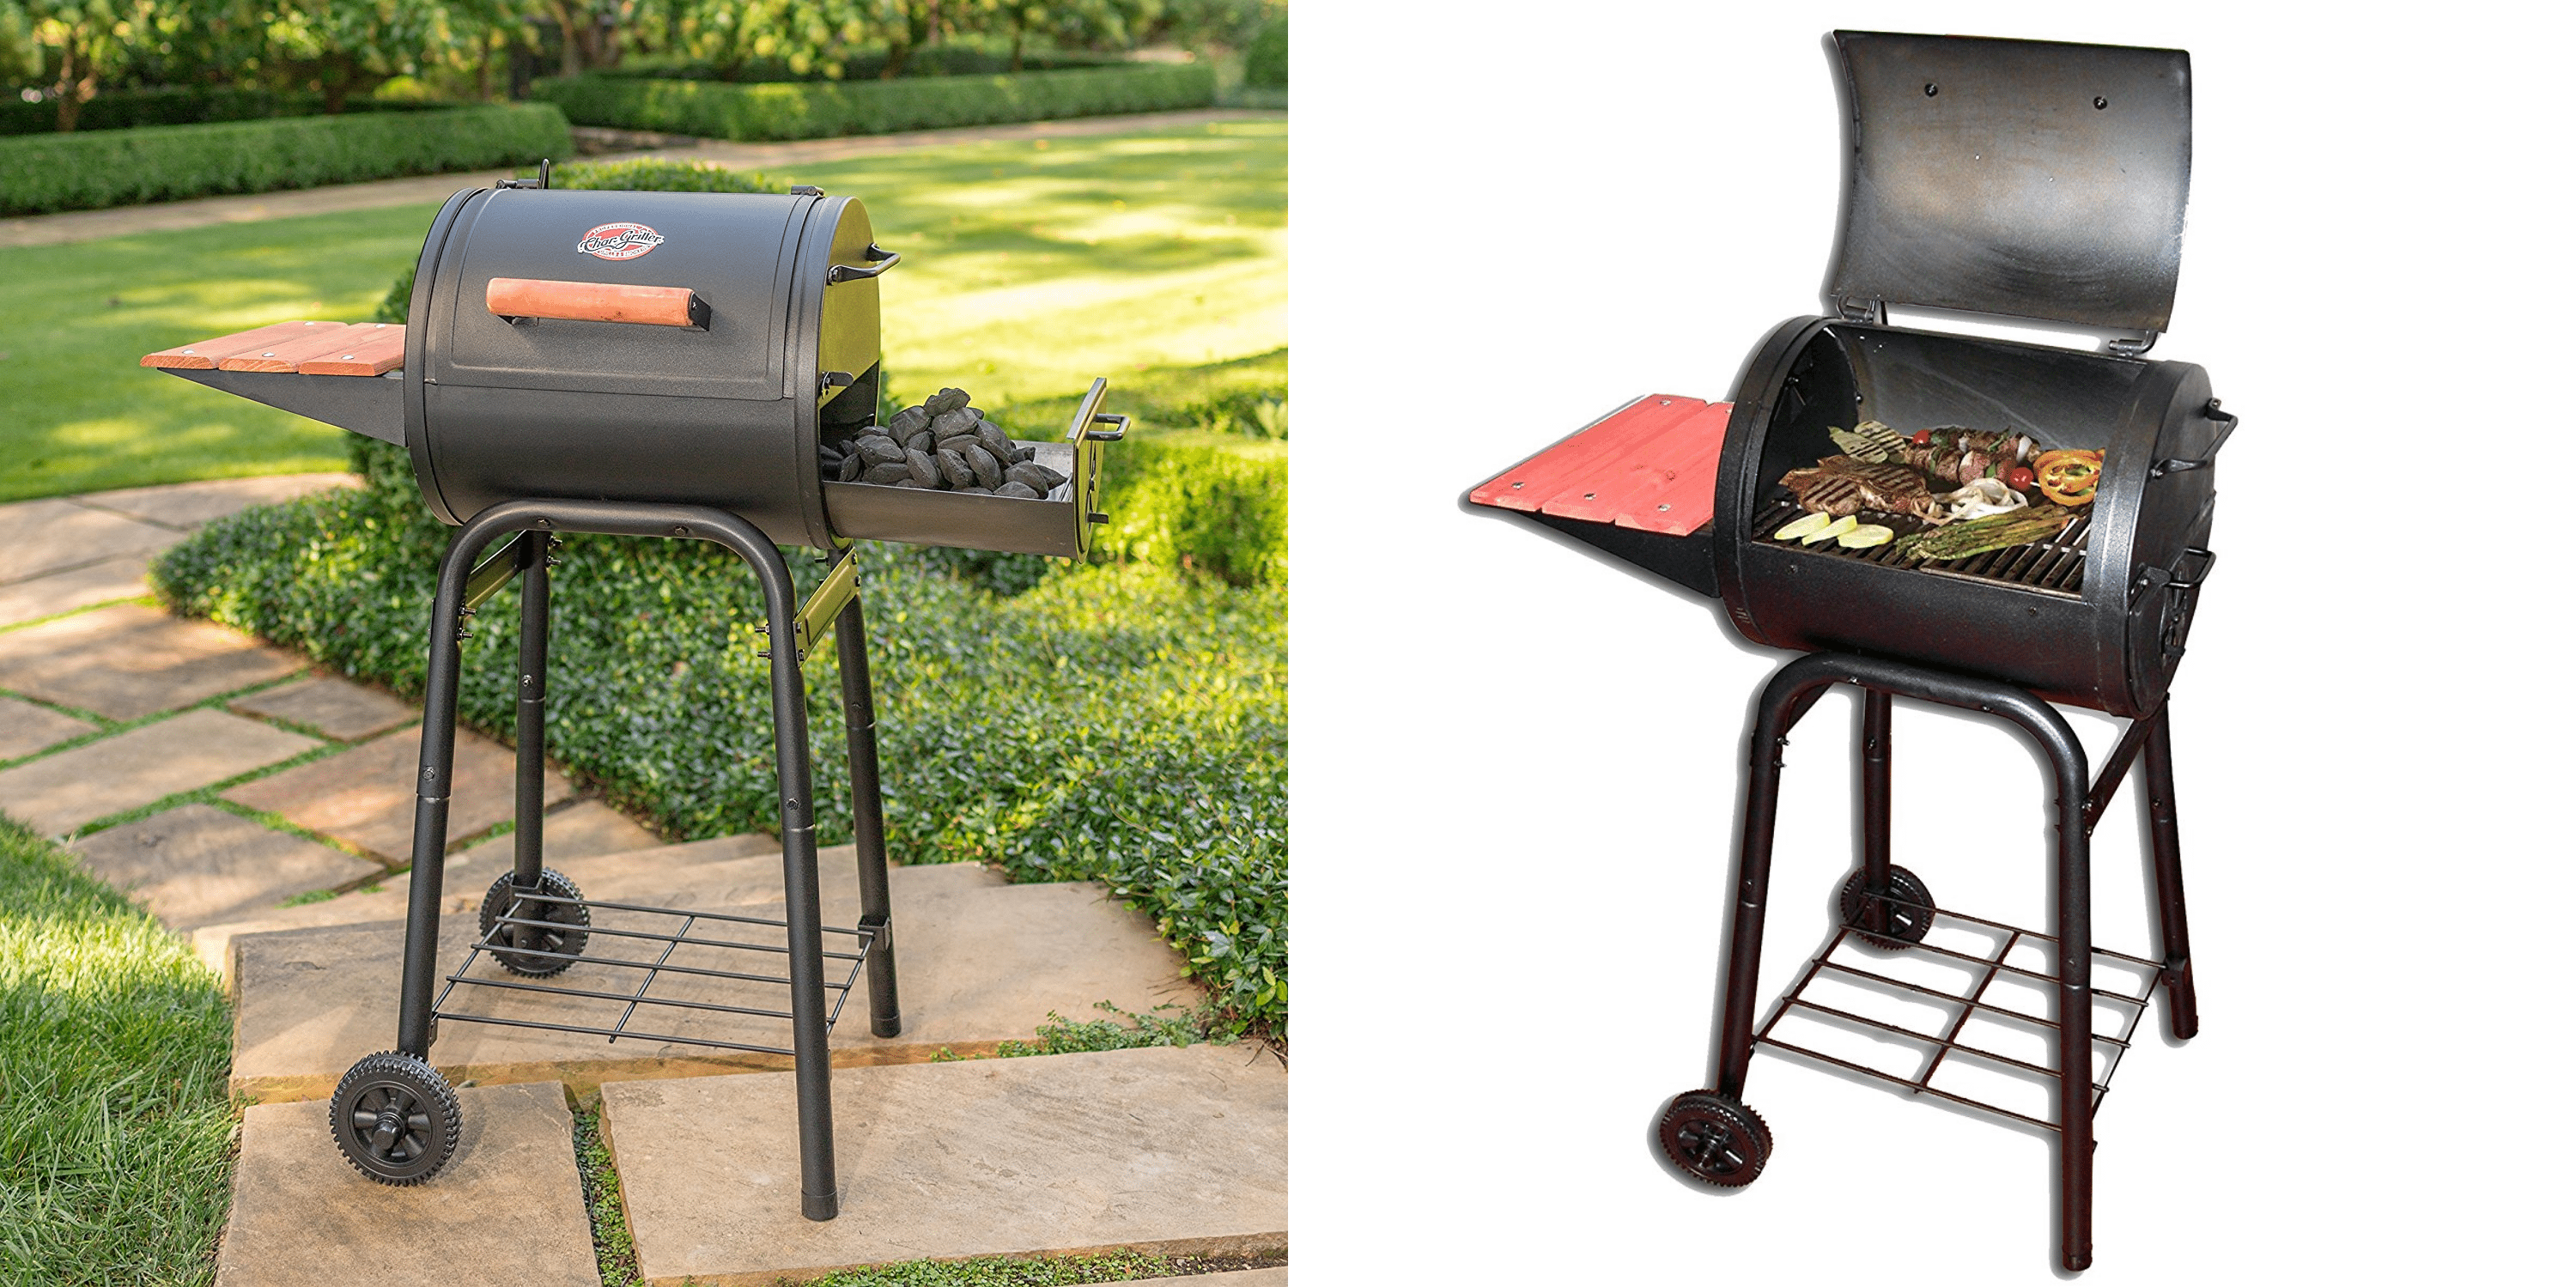 Char Griller Patio Pro Charcoal Grill Just 44 48 Amazon Prime